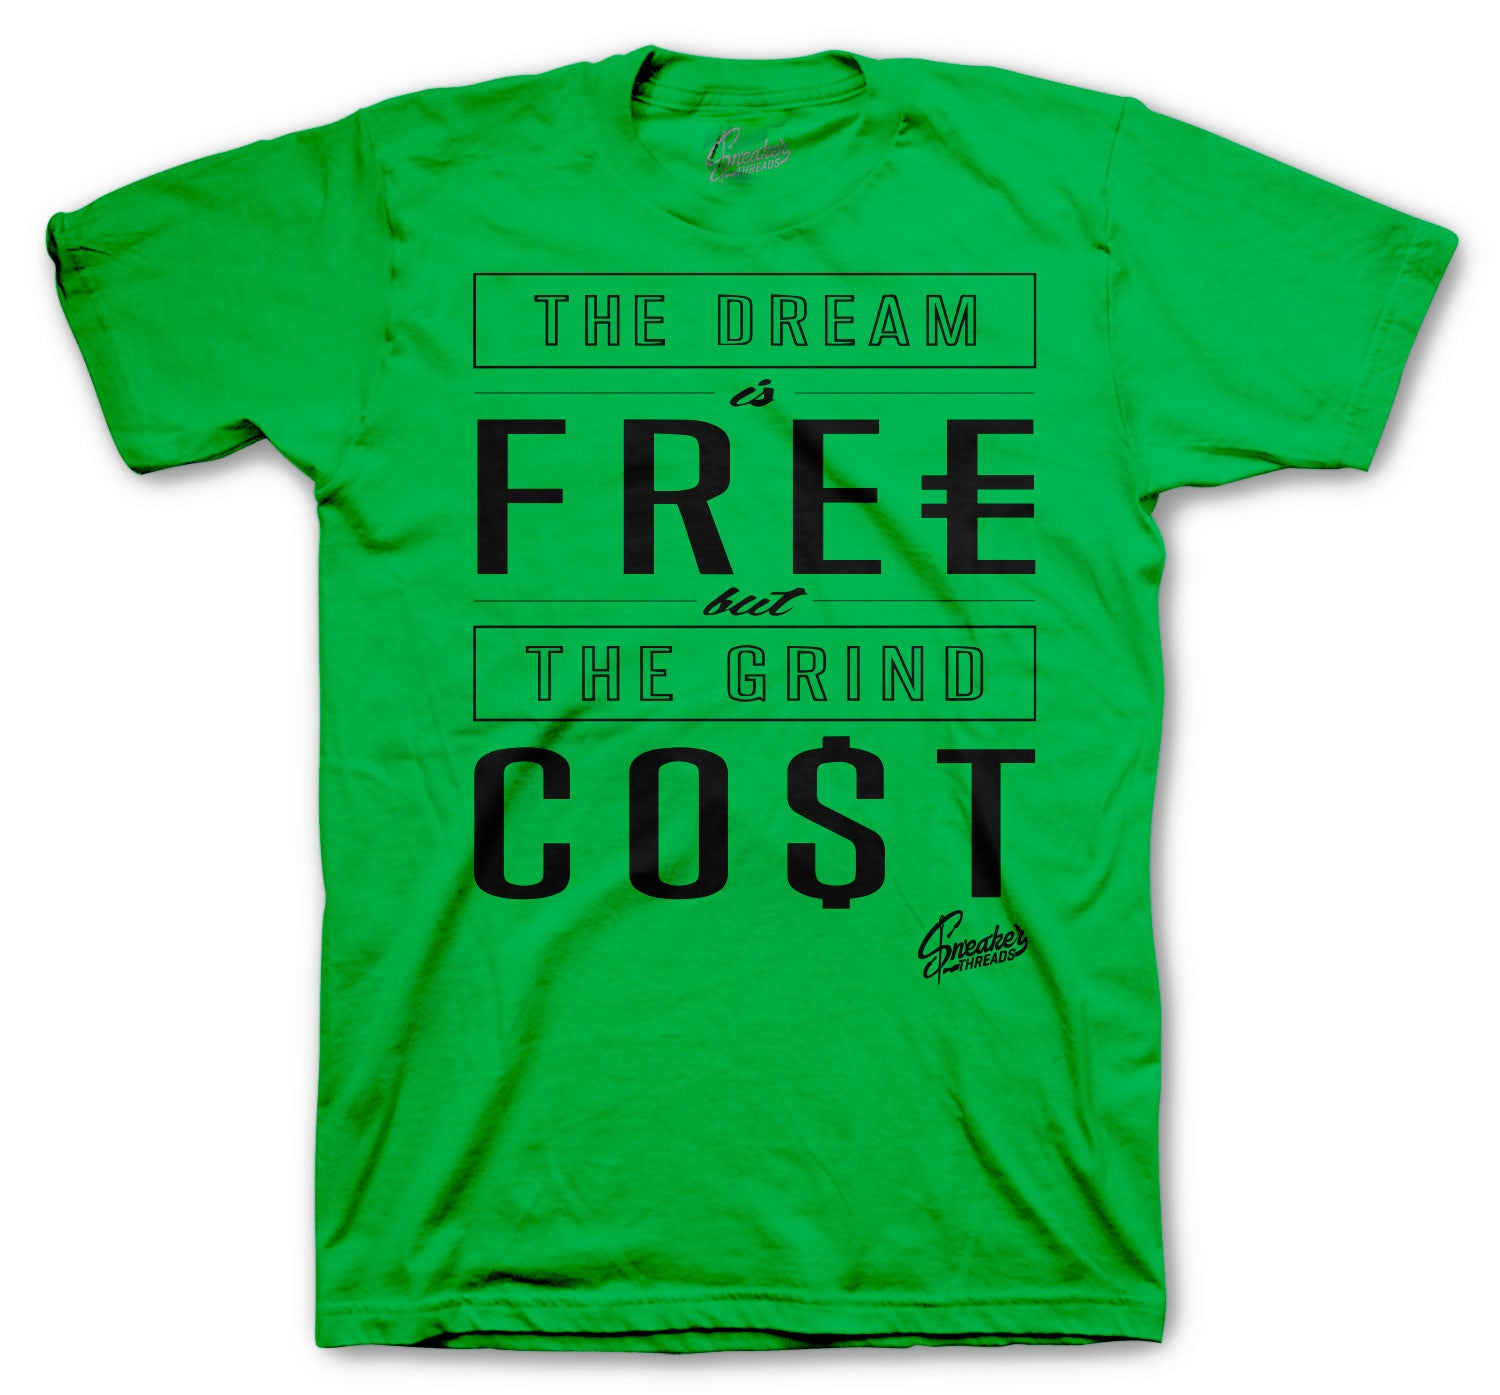 Jordan 13 Lucky Green Cost Shirt